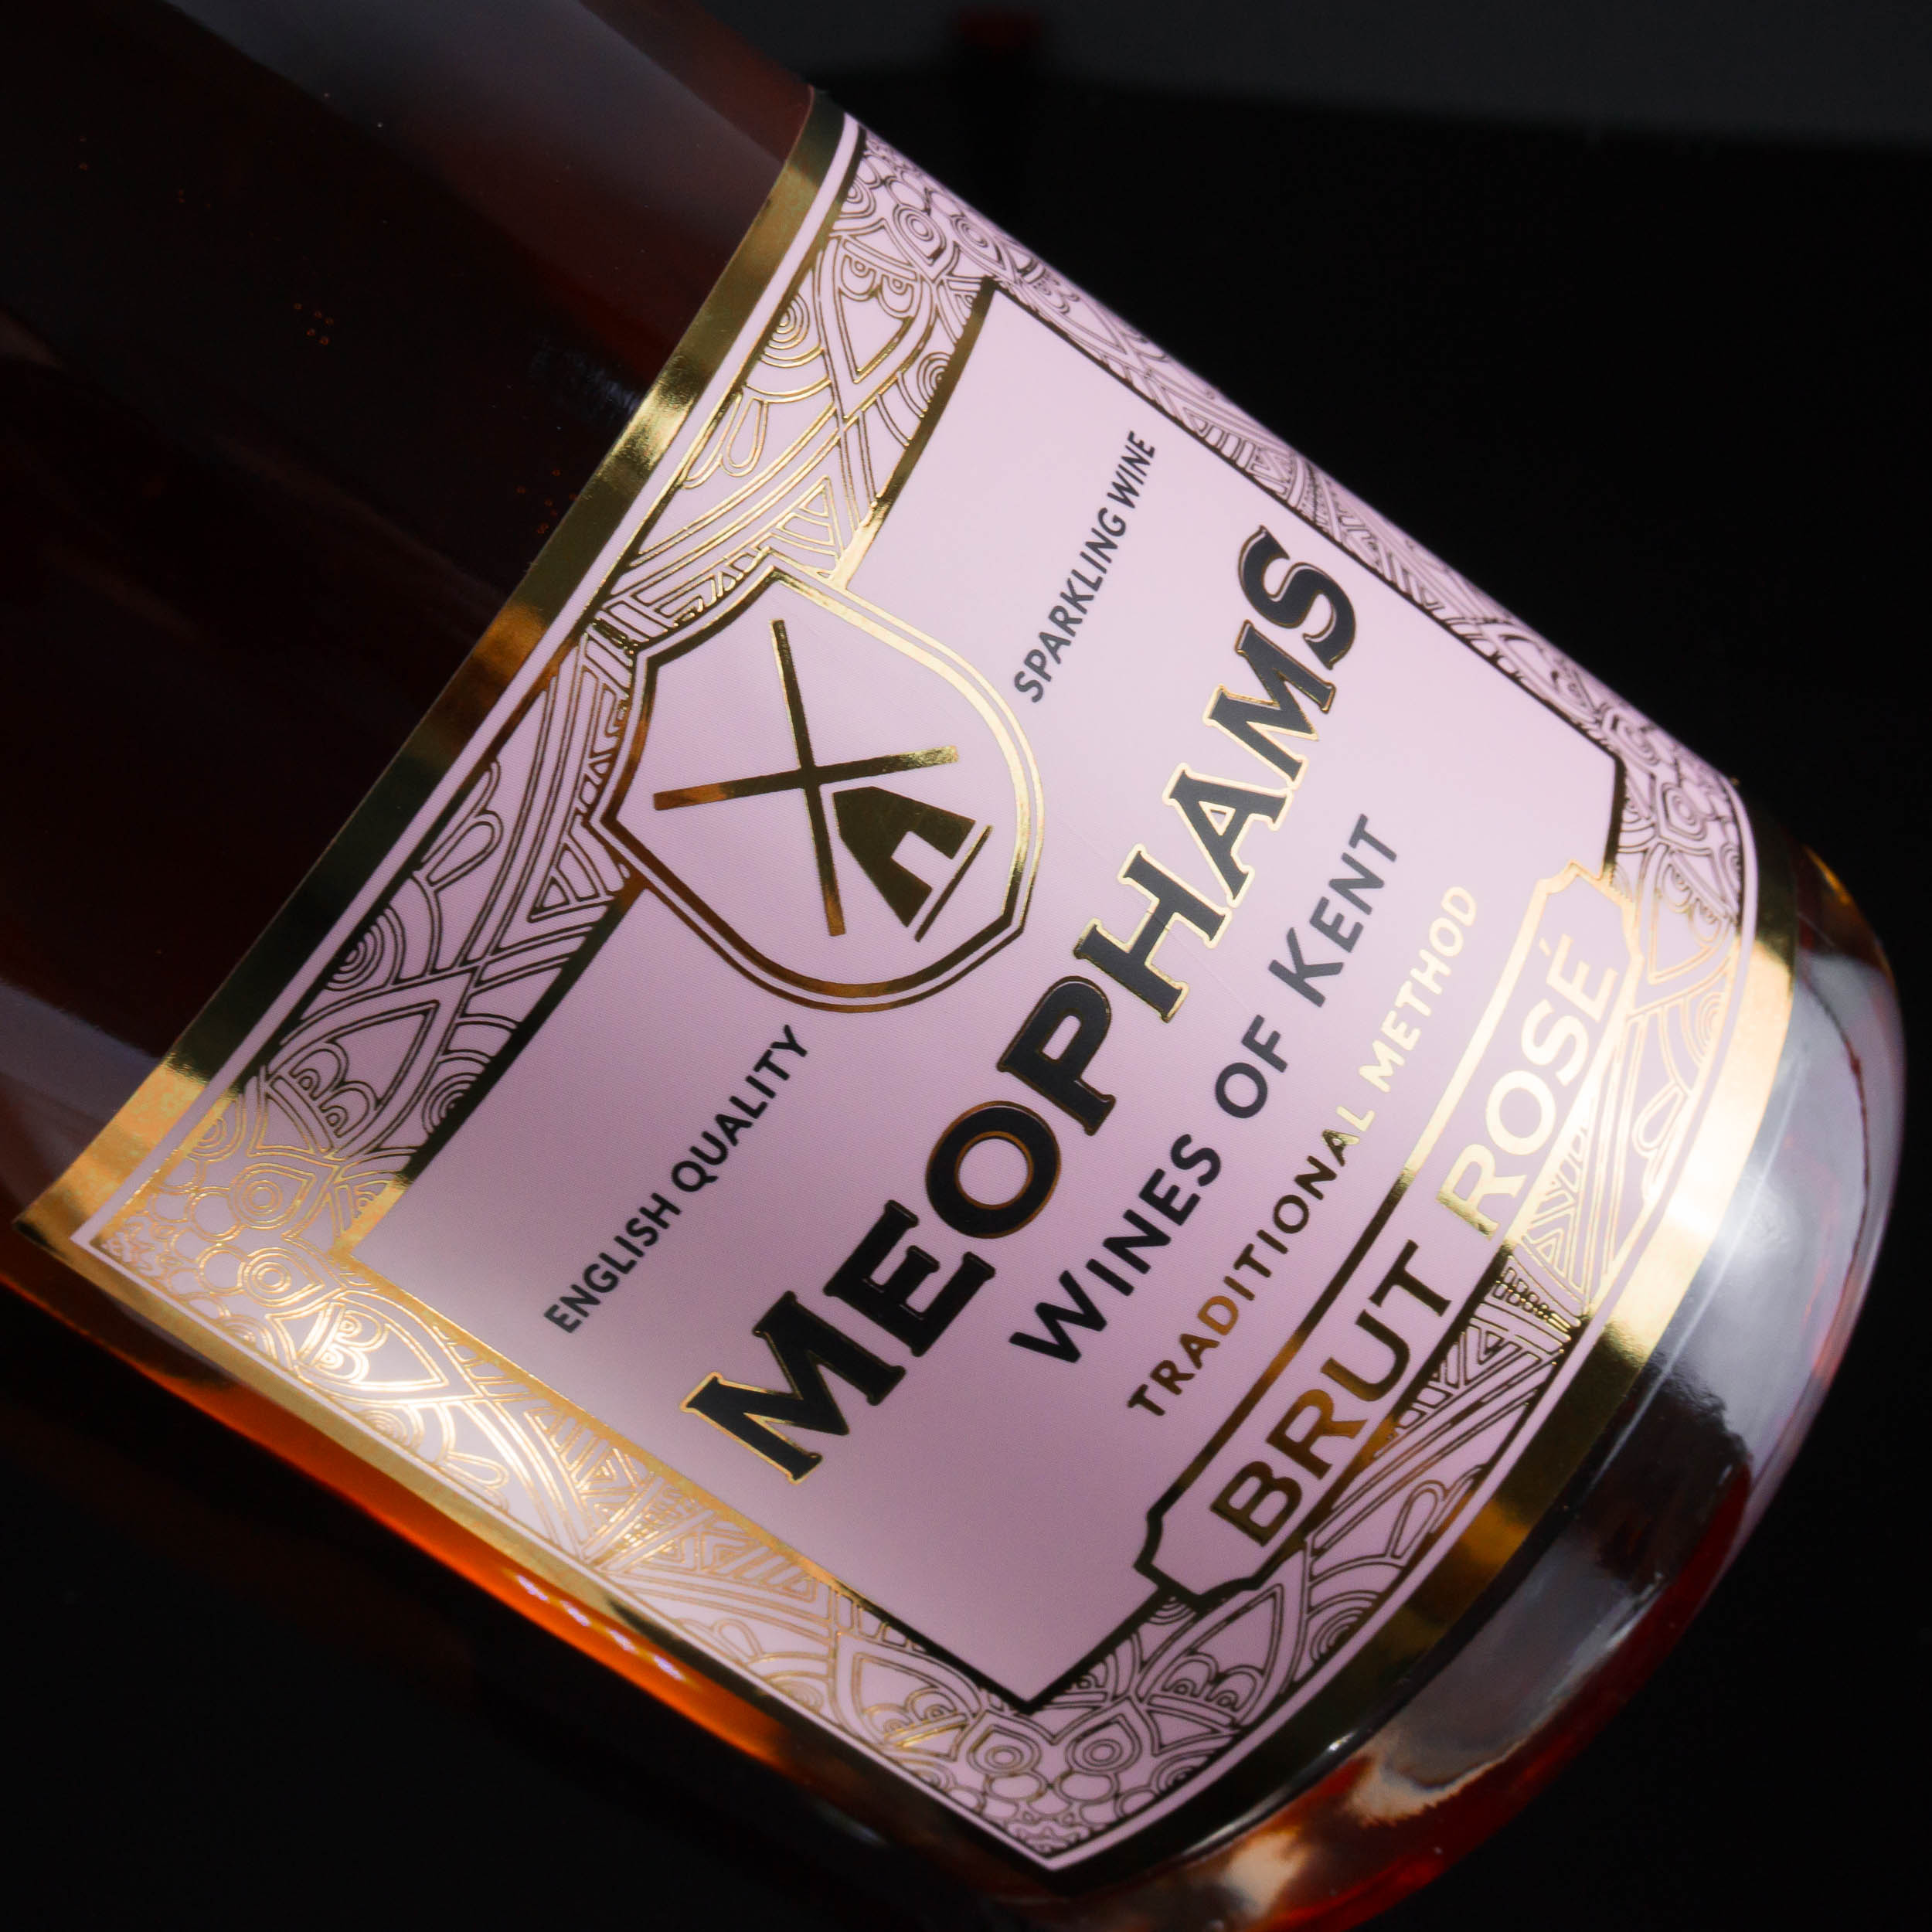 Meophams-Brut-Rose-English-Sparkling-Wine-6